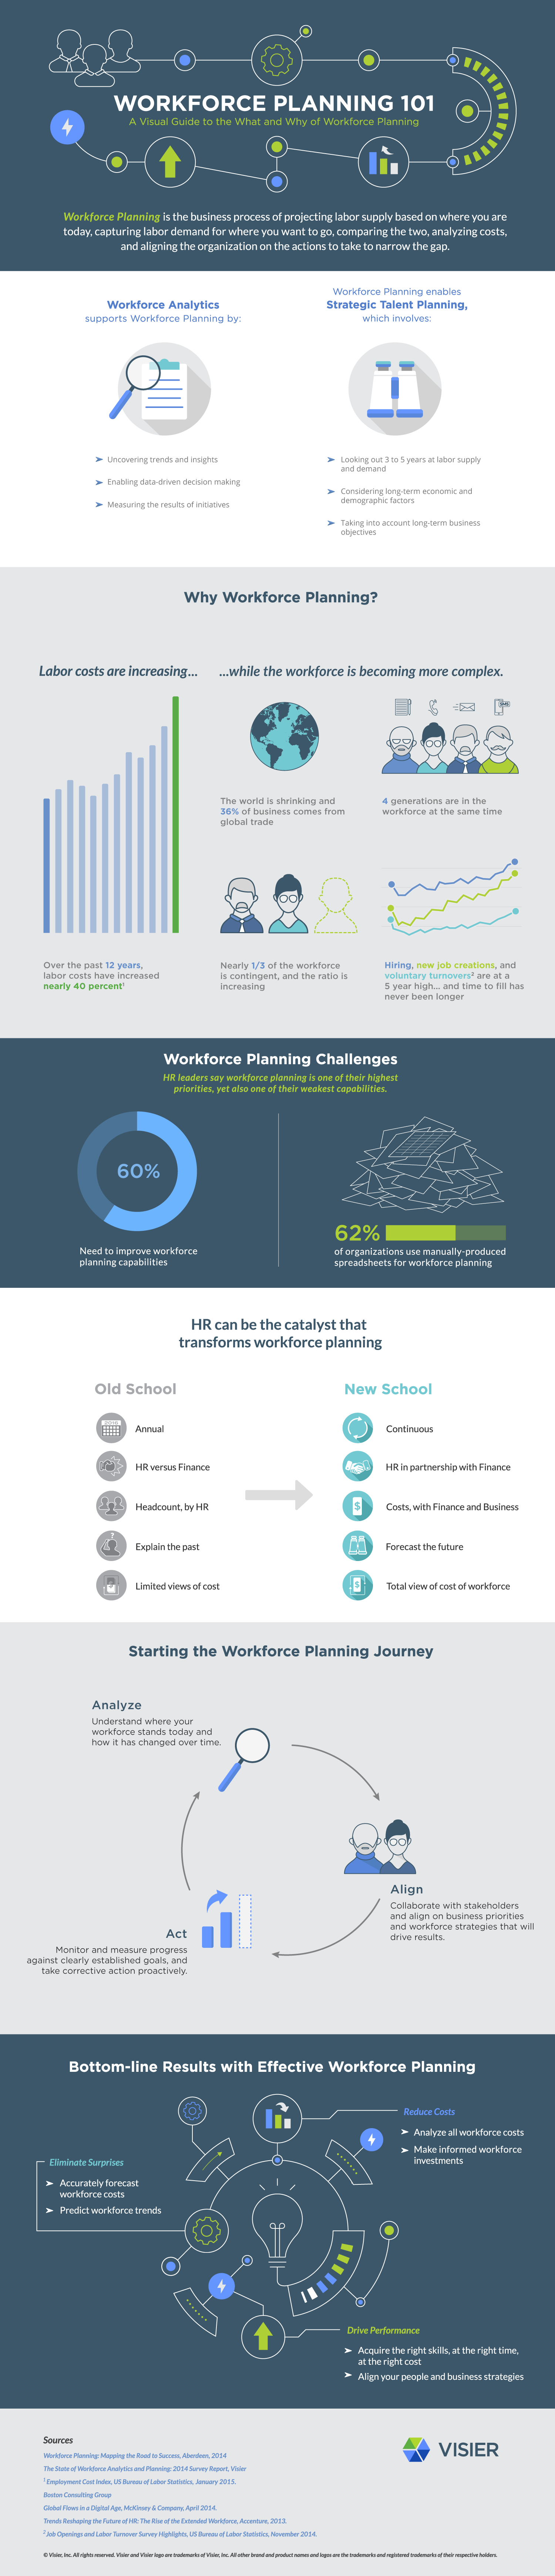 Visier Workforce Planning 101